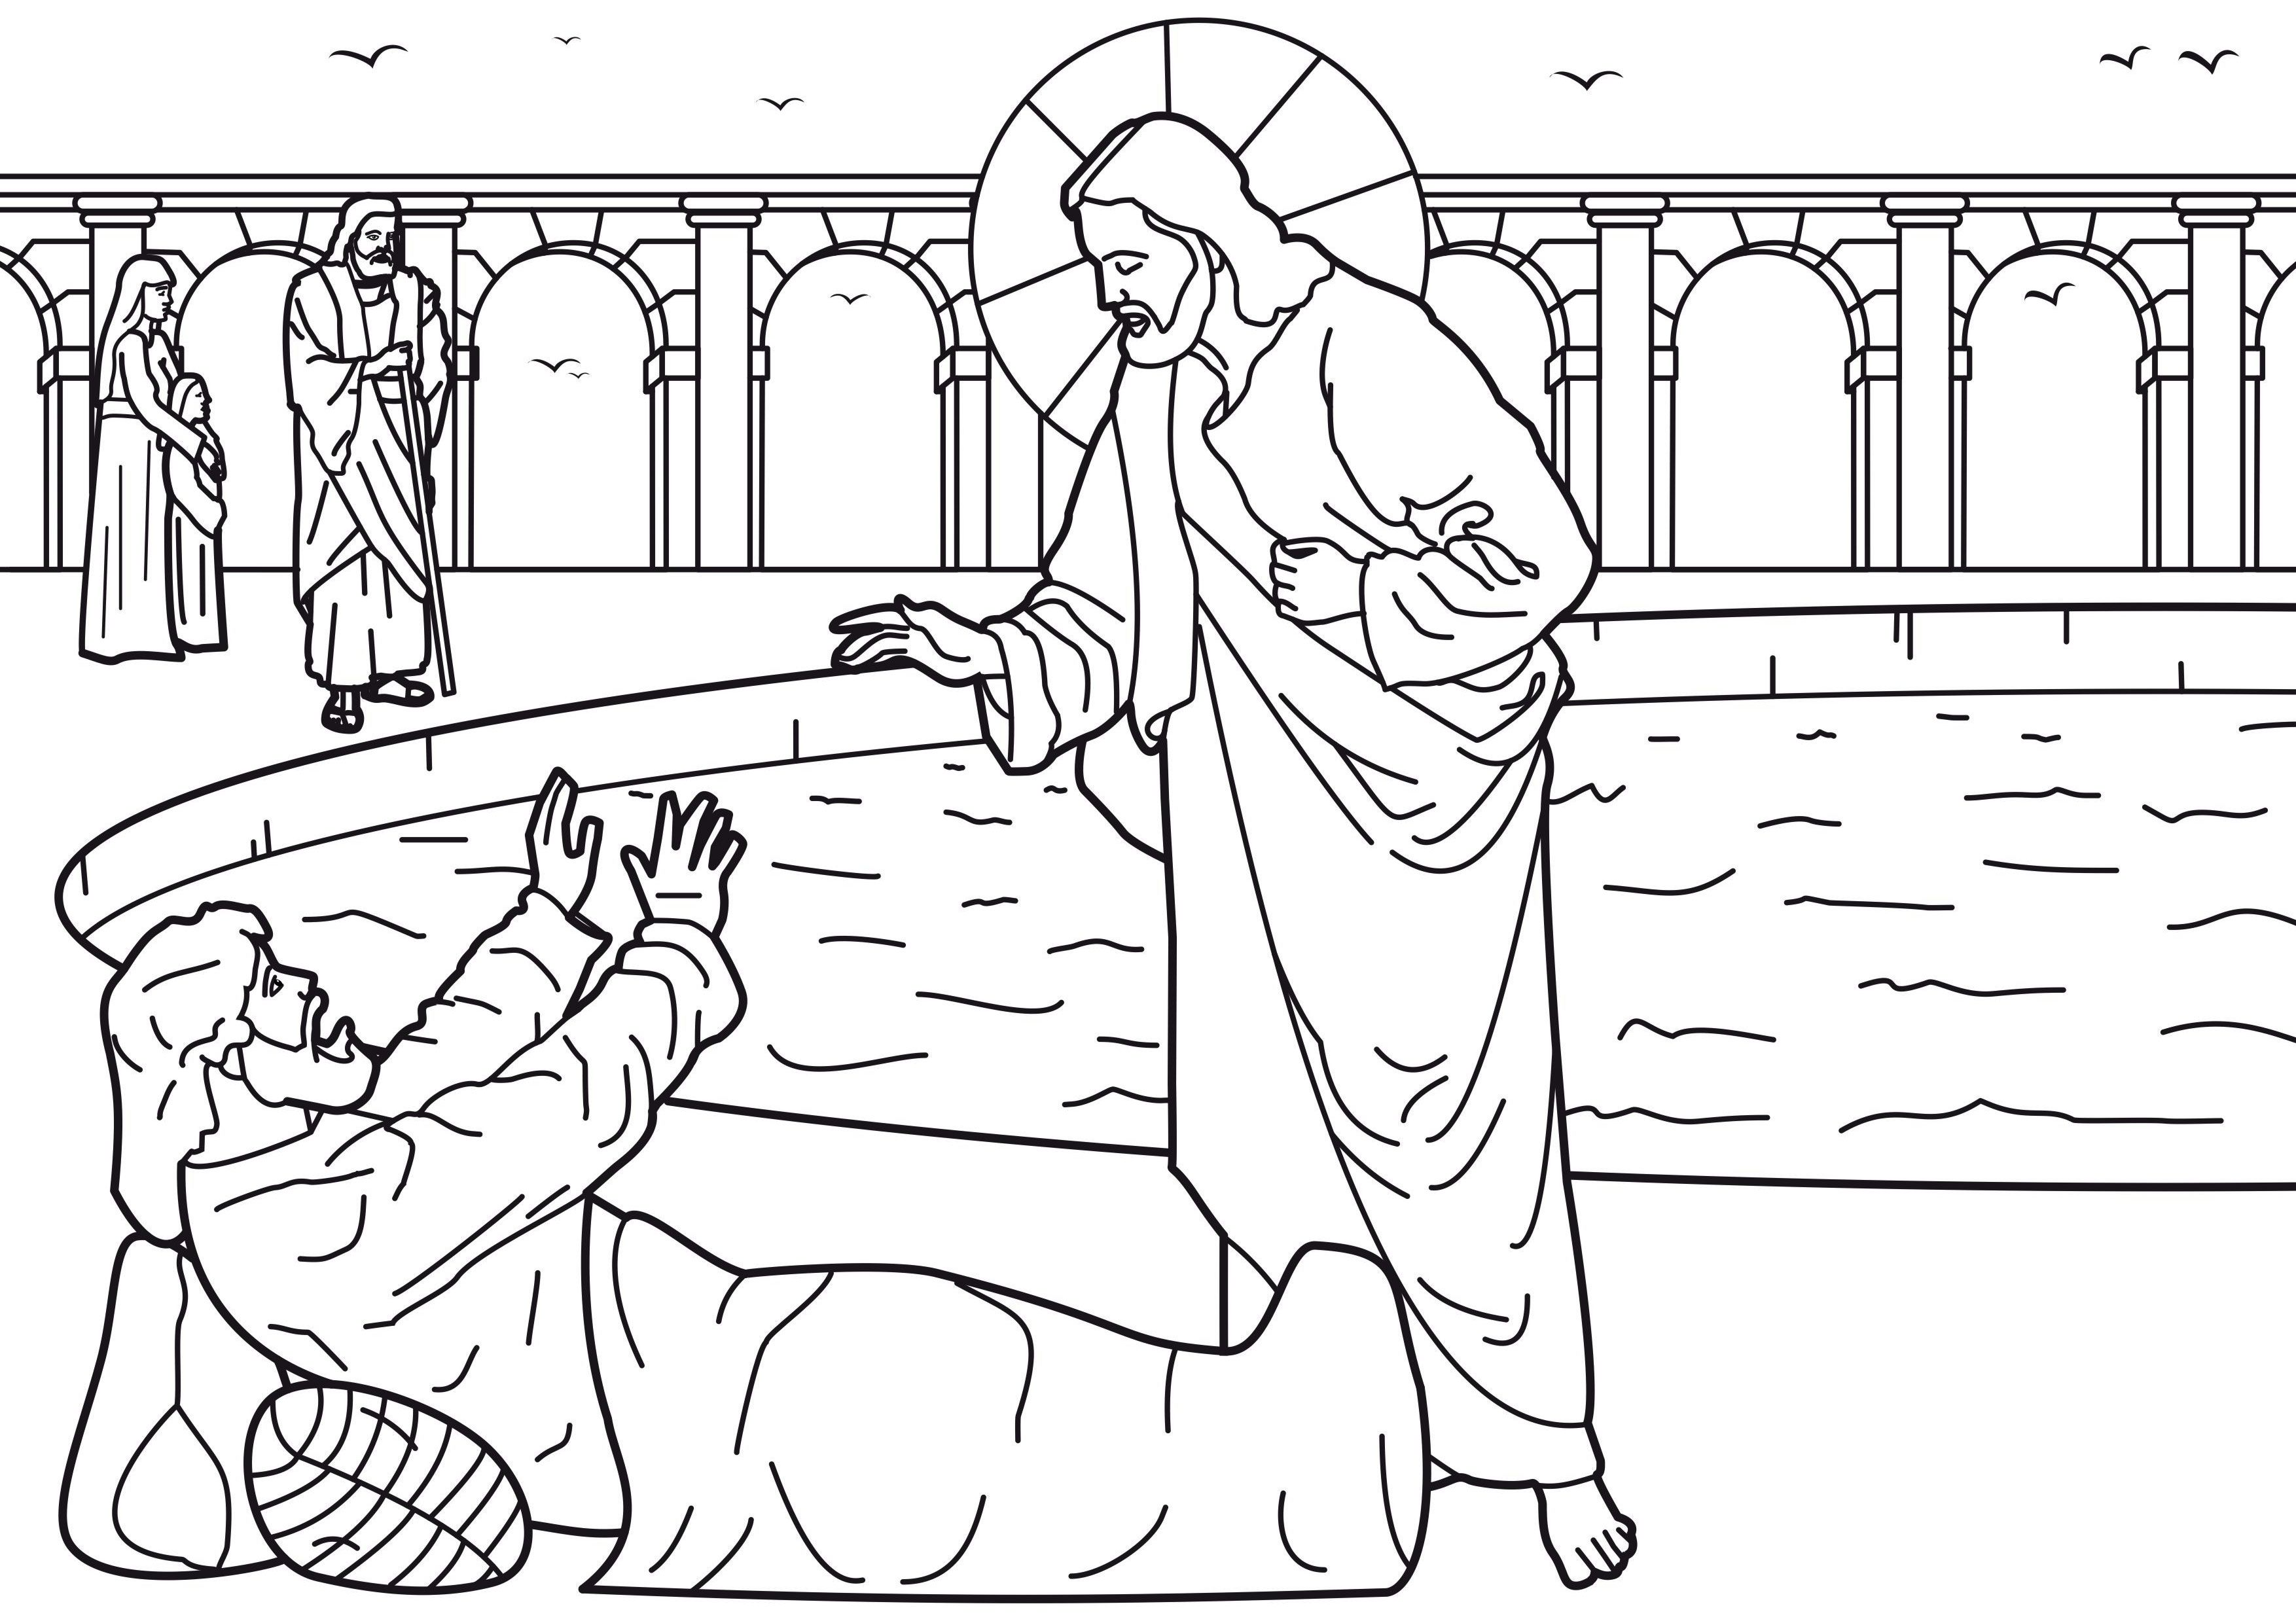 Clip Art Jesus Heals The Paralytic Coloring Page jesus heals a man by the pool coloring page az pages at heals